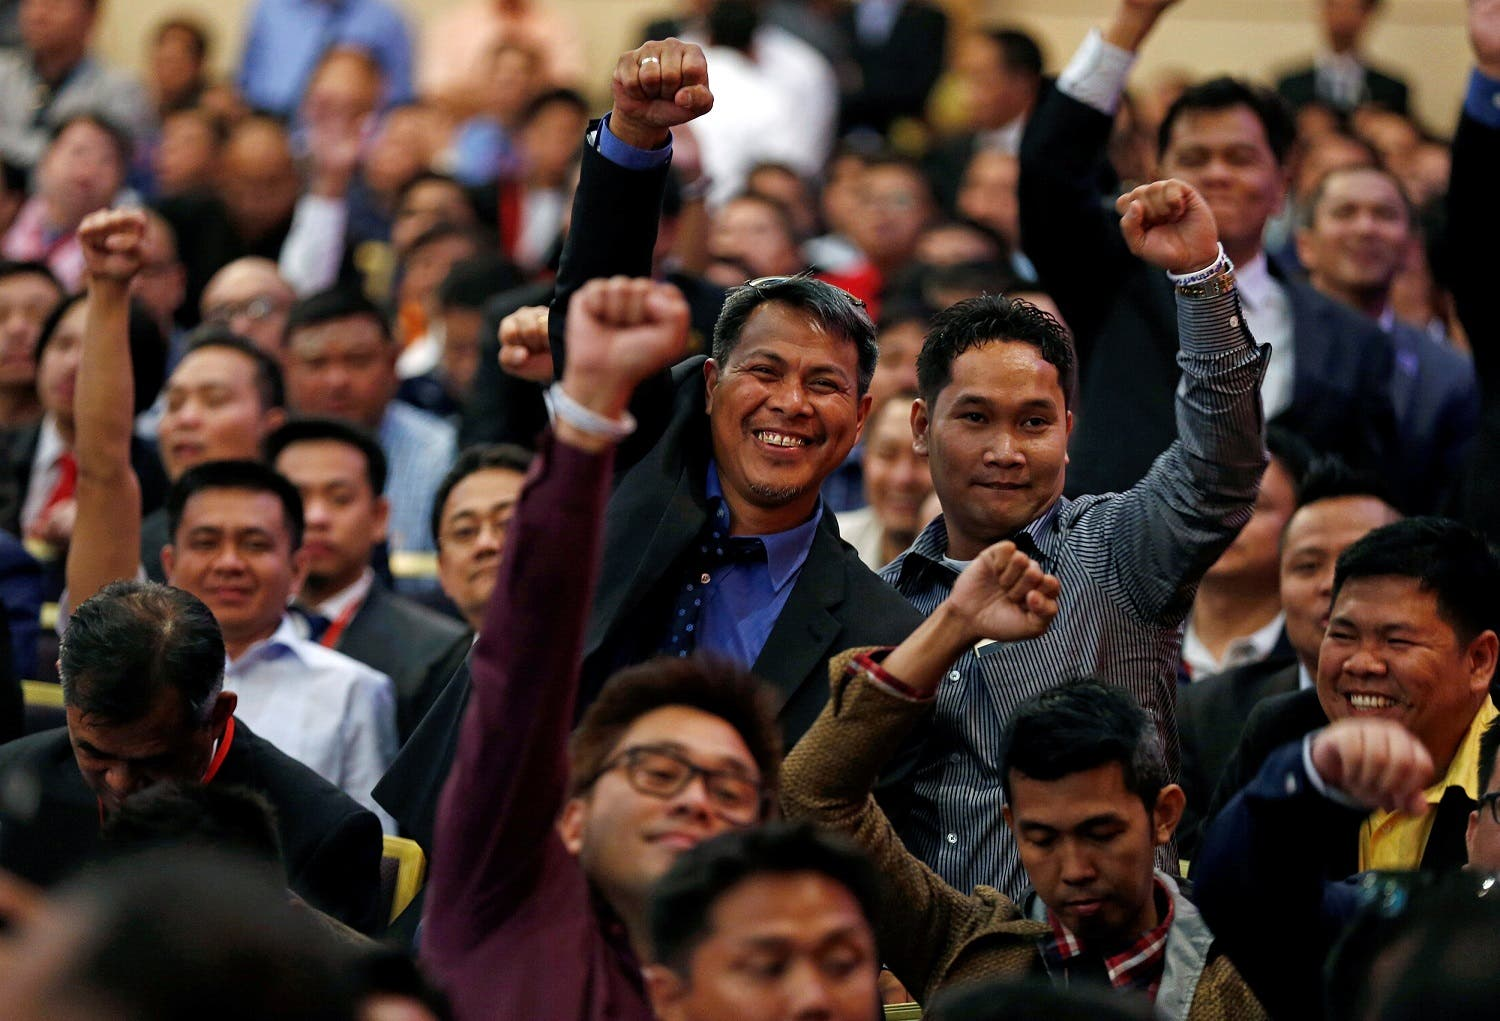 Members of the Filipino community attend a meeting with Philippine President Rodrigo Duterte in Riyadh on April 12, 2017. (Reuters)